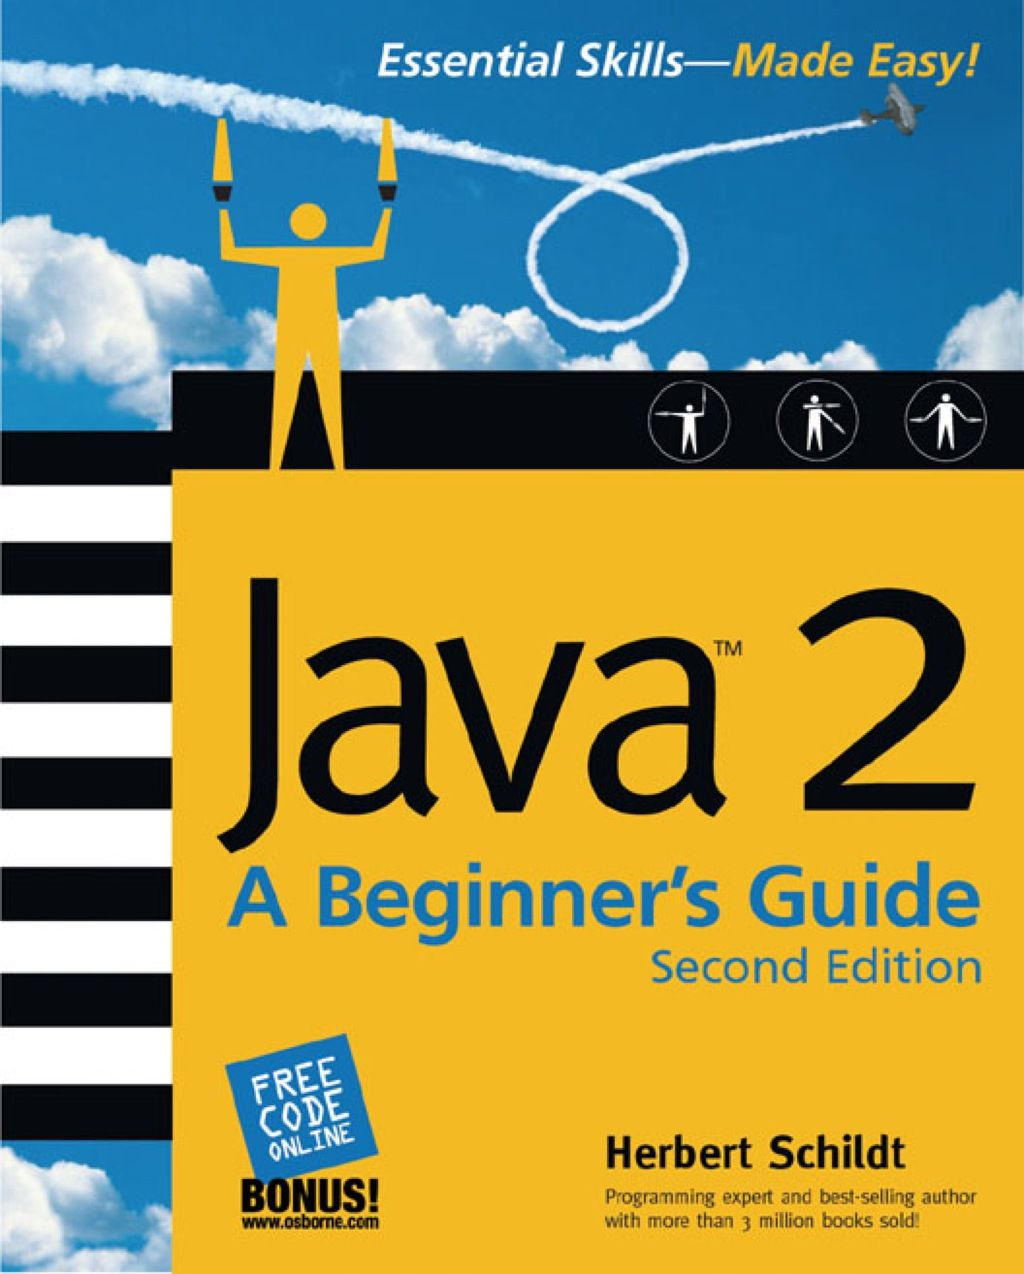 Java(tm)2 A Beginner's Guide (eBook) Learn to read